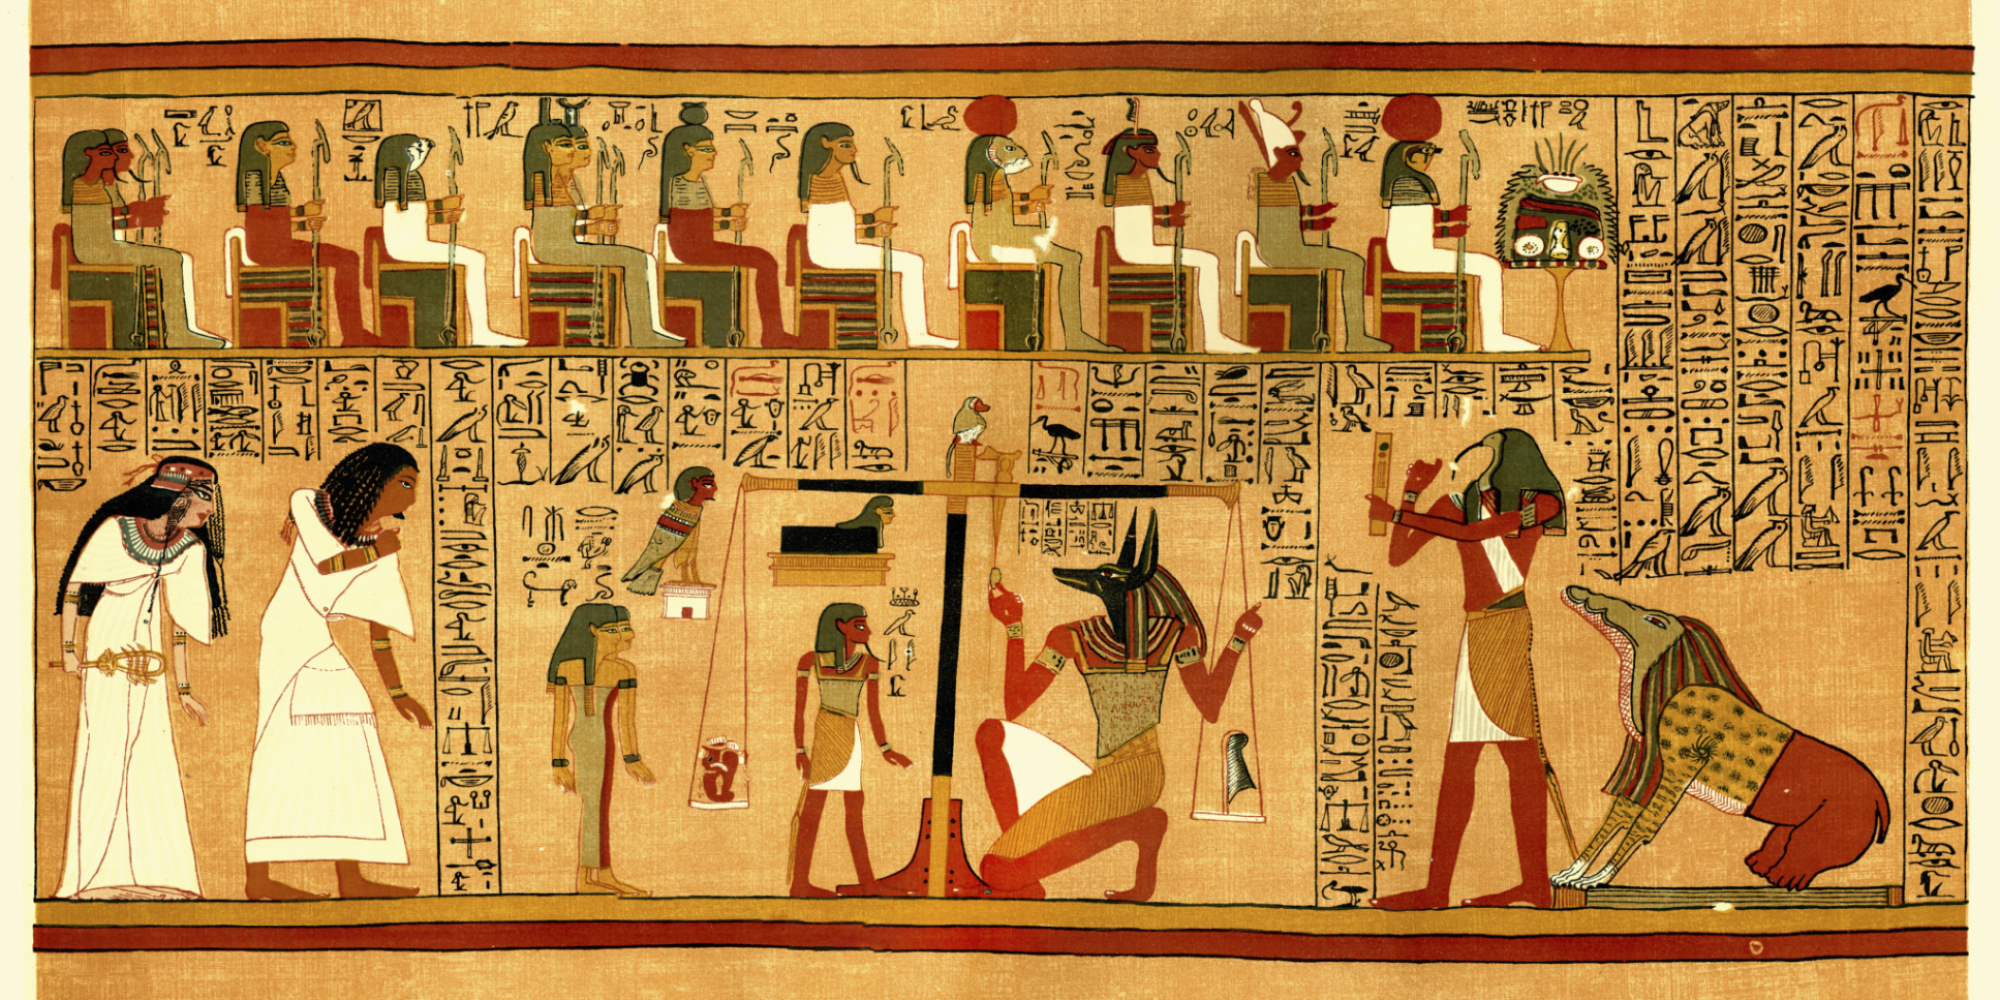 From Ancient Egyptian Anomalies To Old School Dating This